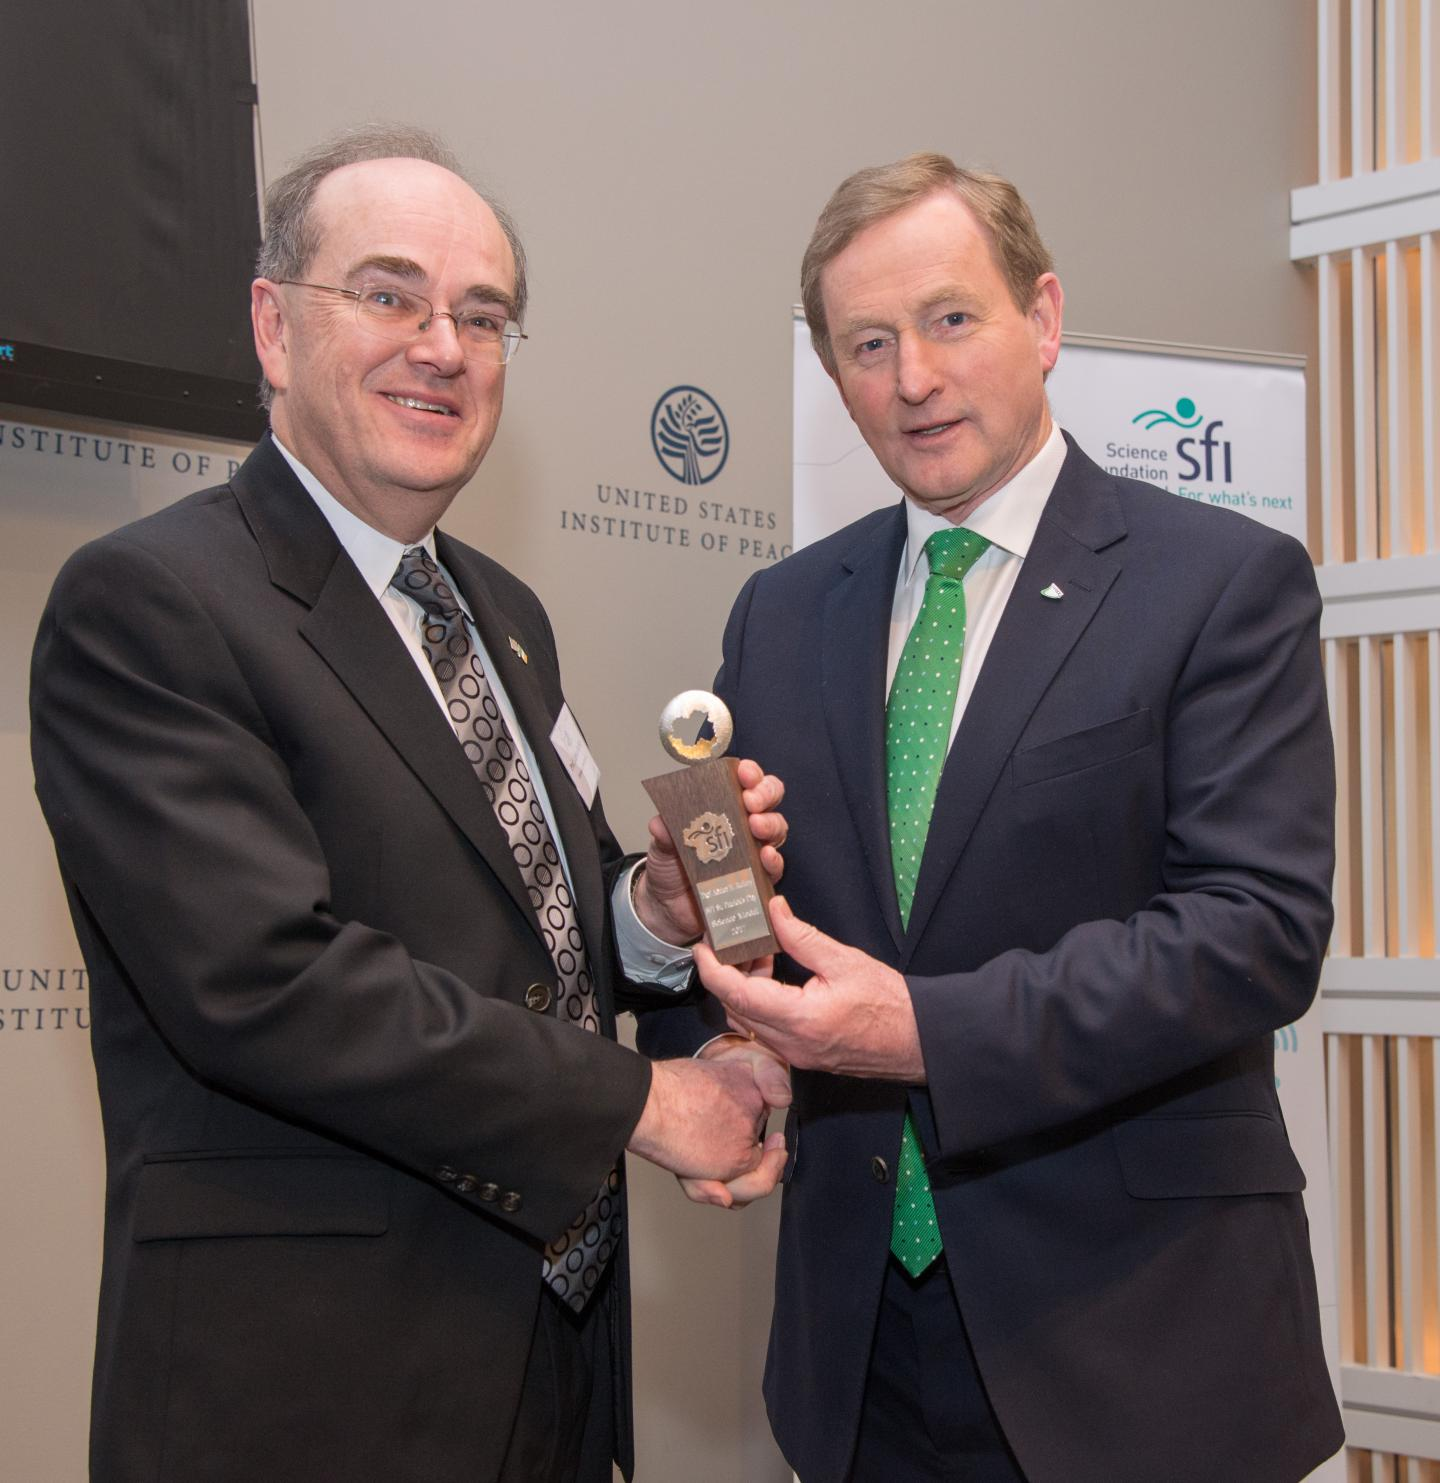 Adrian Raftery and Enda Kenny